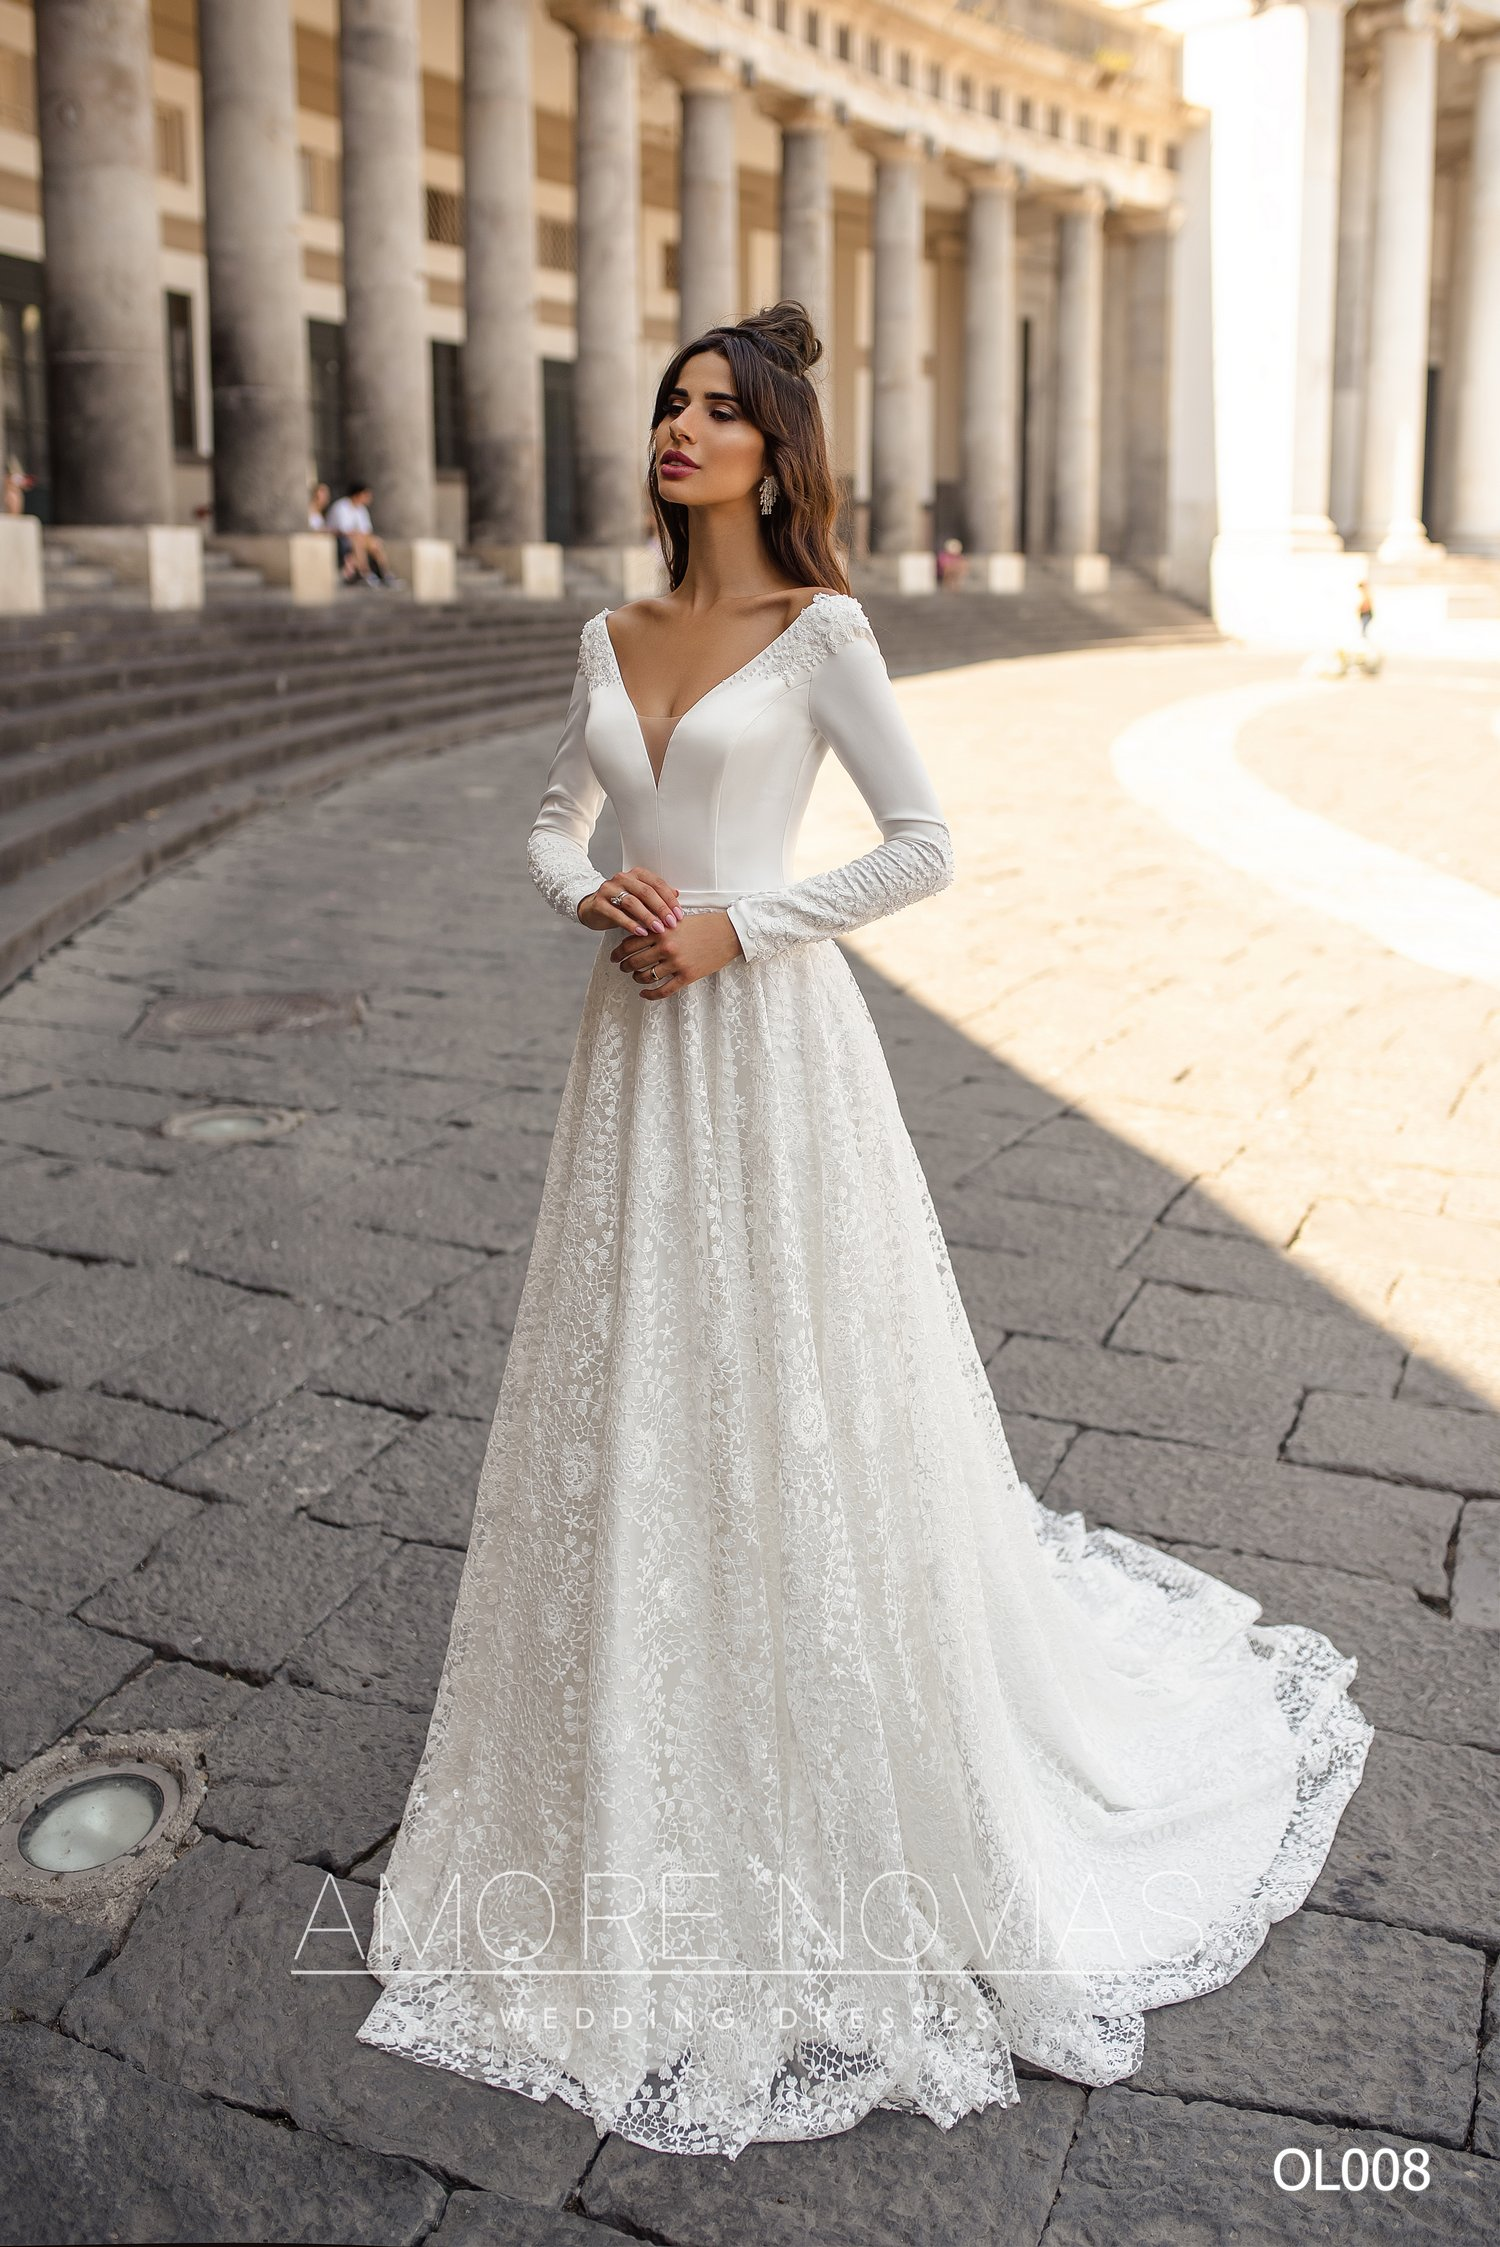 http://amore-novias.com/images/stories/virtuemart/product/OL008       (1).jpg